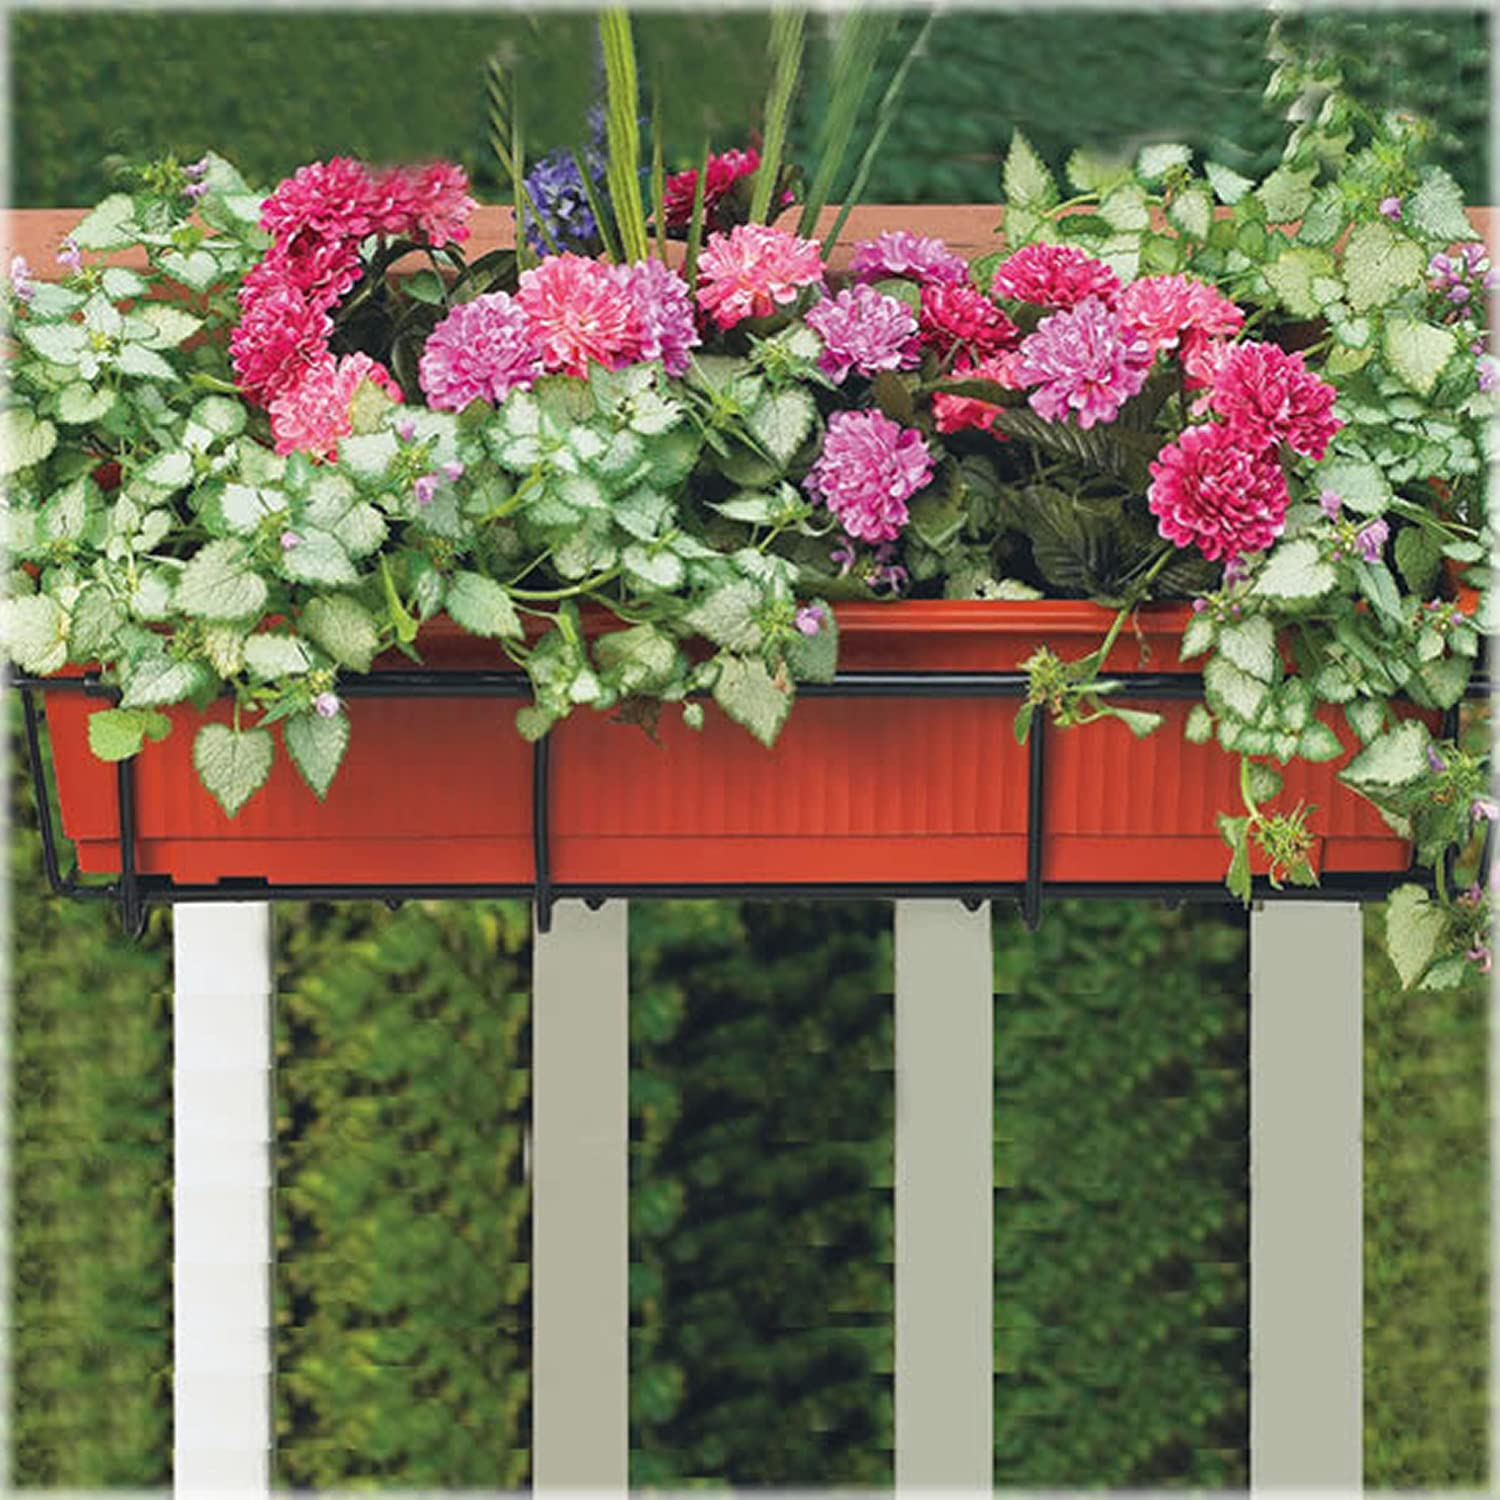 Adjustable Flower Box Holder